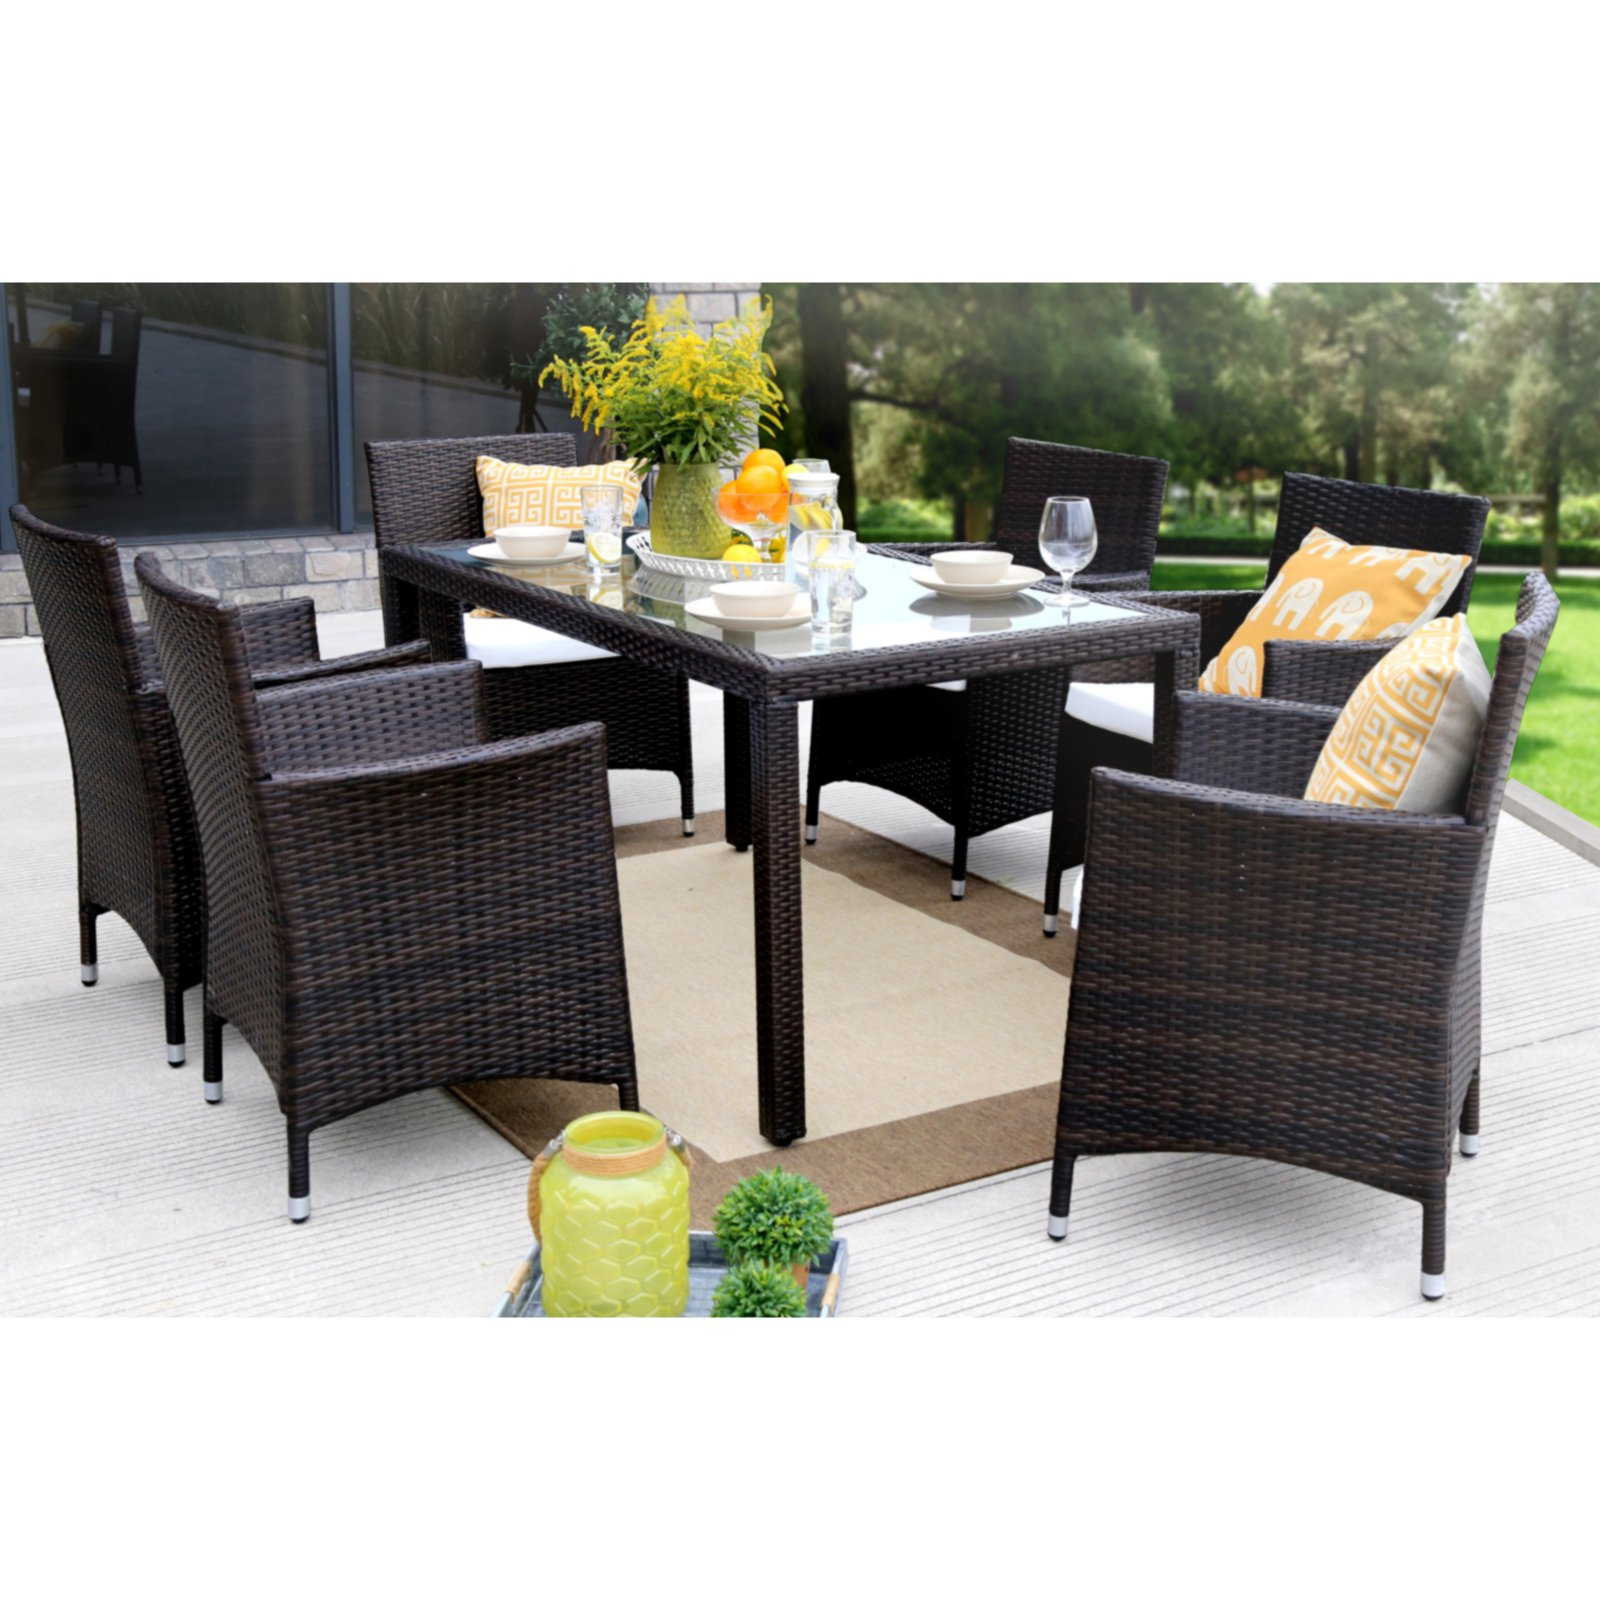 Baner Garden Outdoor Furniture Complete Patio Cushion PE Wicker Rattan Garden Dining Set, Brown, 7-Pieces